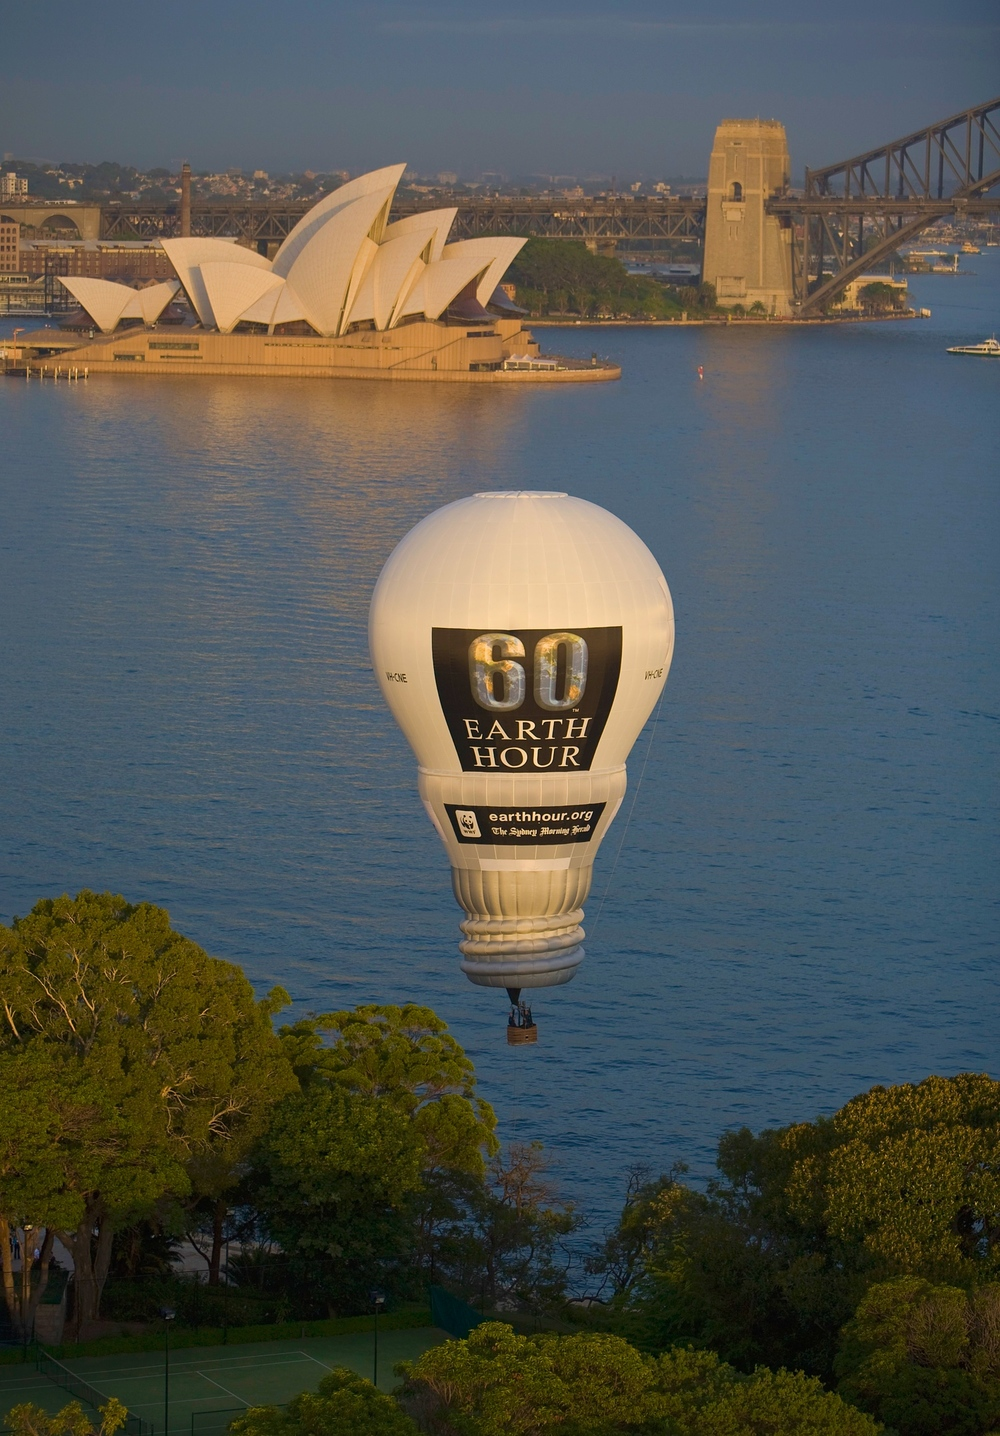 Our advertising 'Lightbulb' hot air balloon, used to promote Earth Hour.